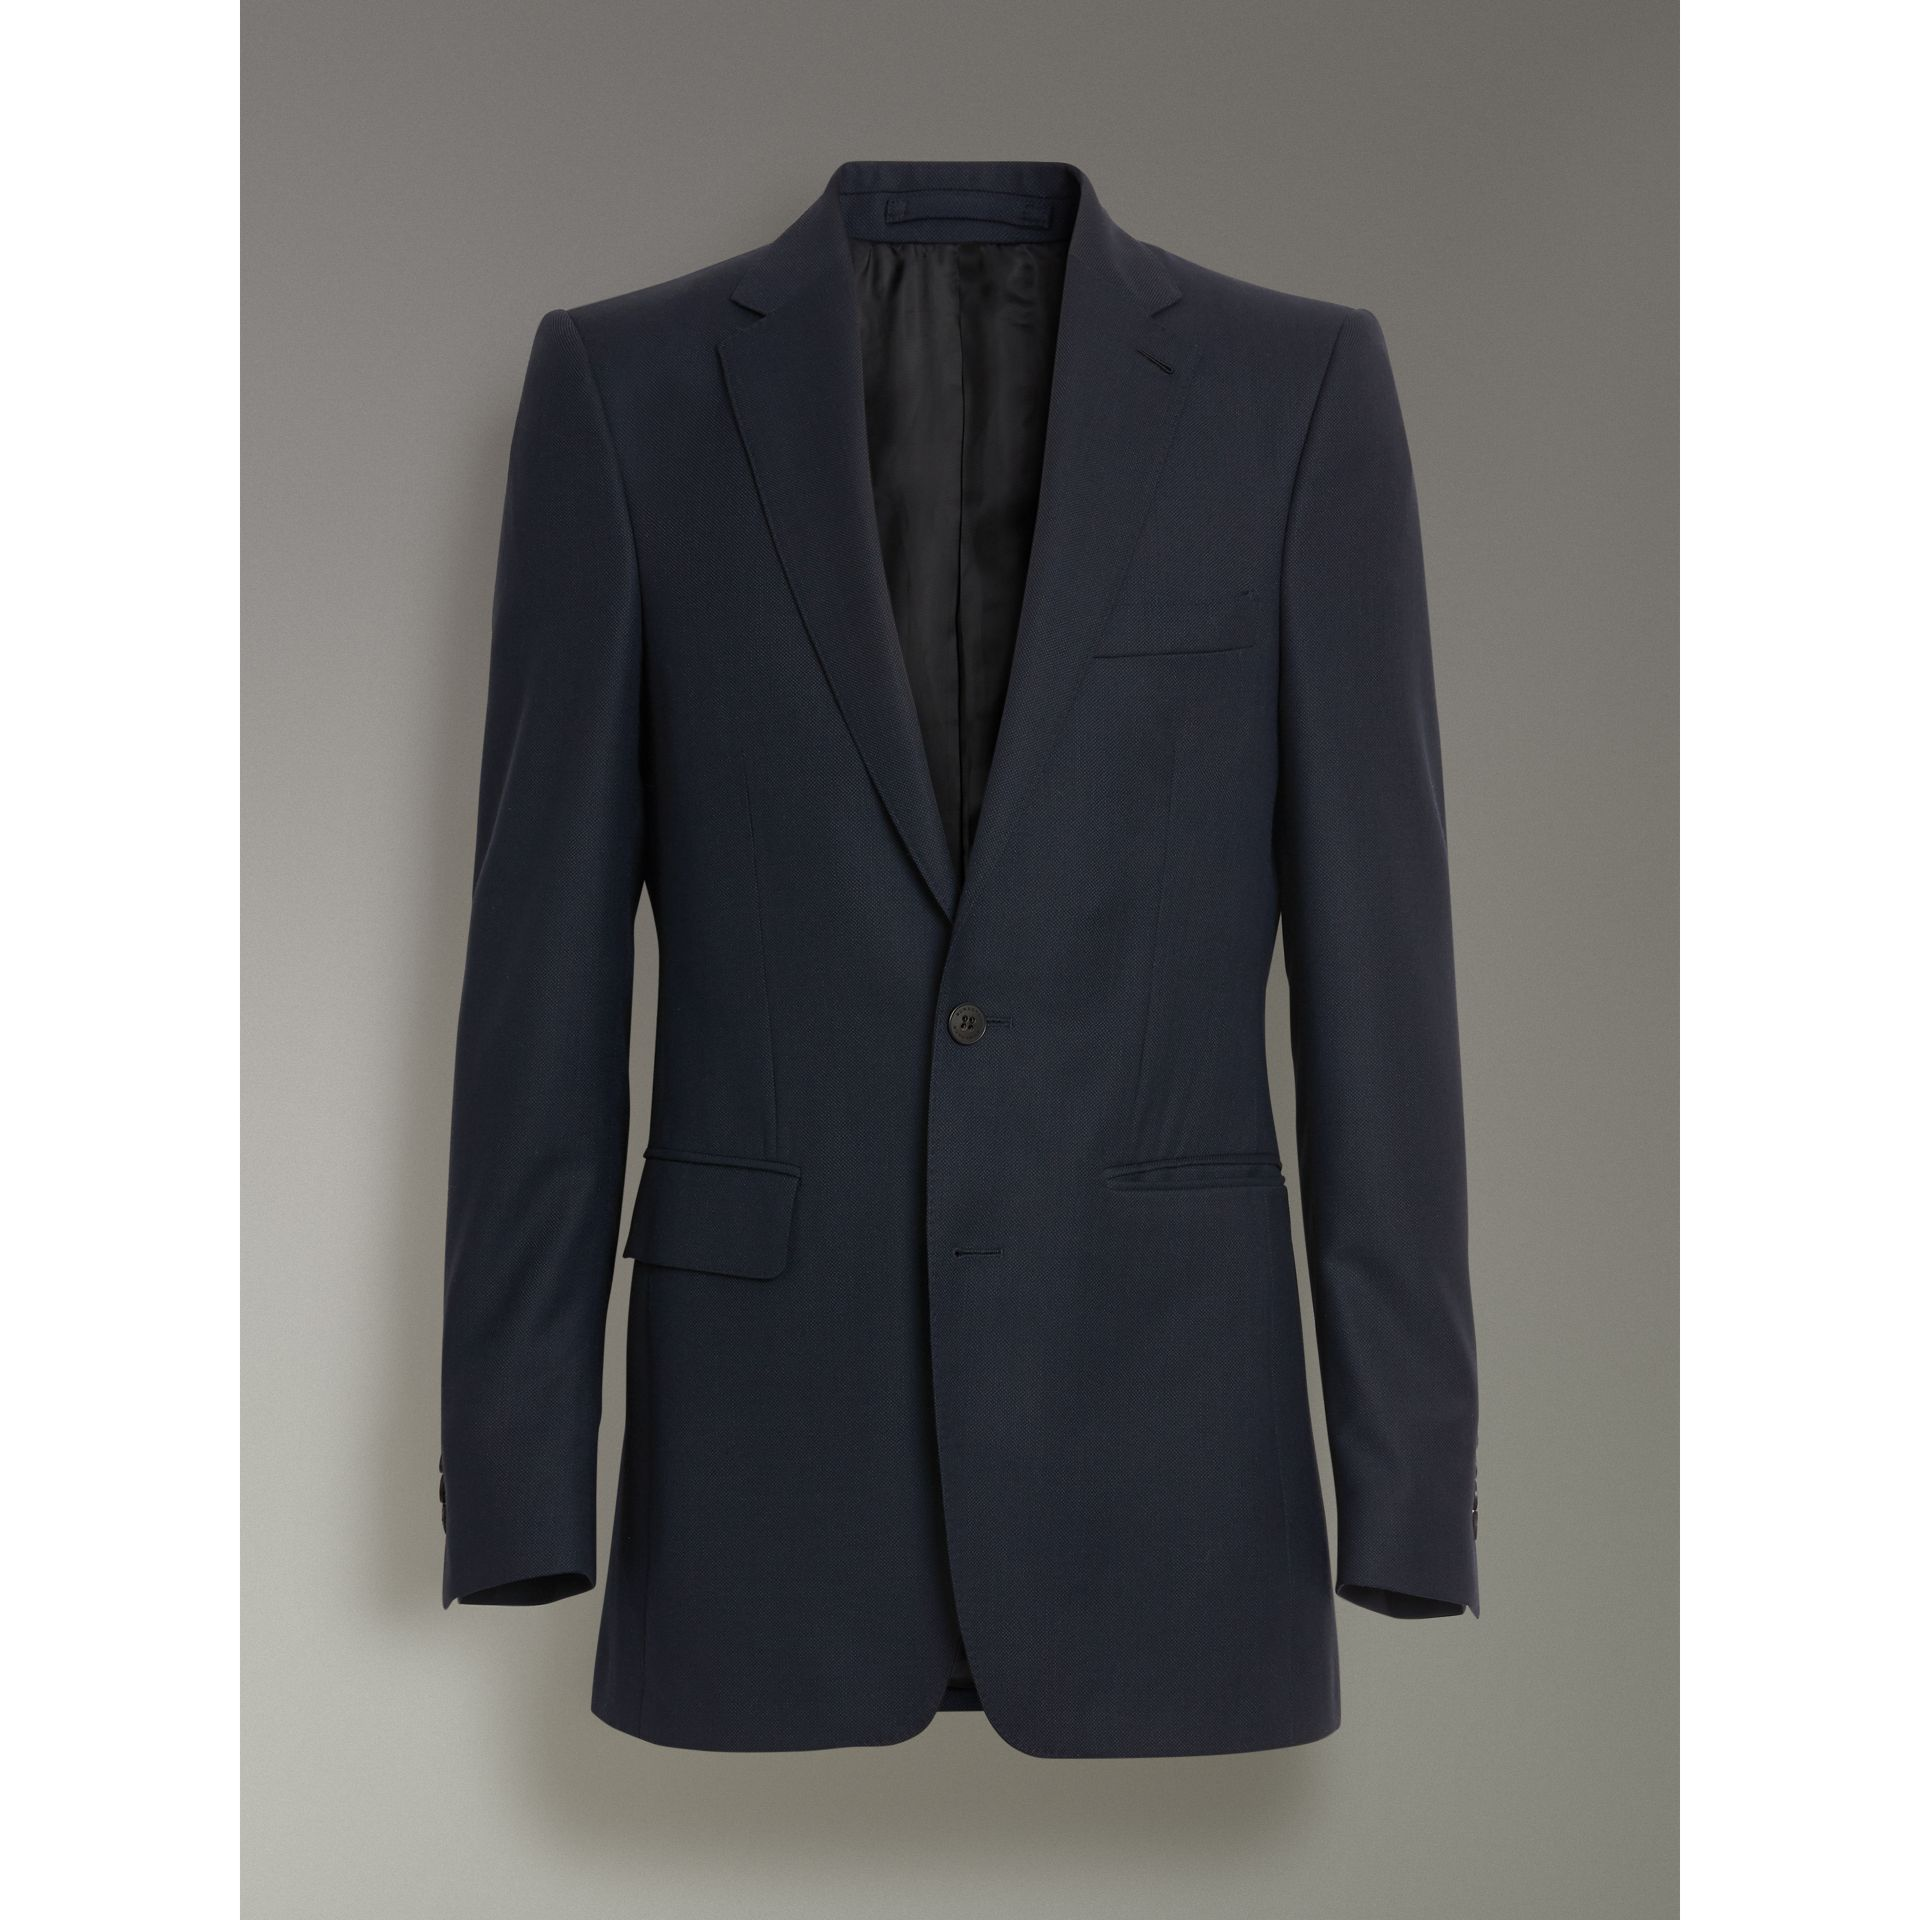 Slim Fit Birdseye Wool Suit in Navy - Men | Burberry - gallery image 3